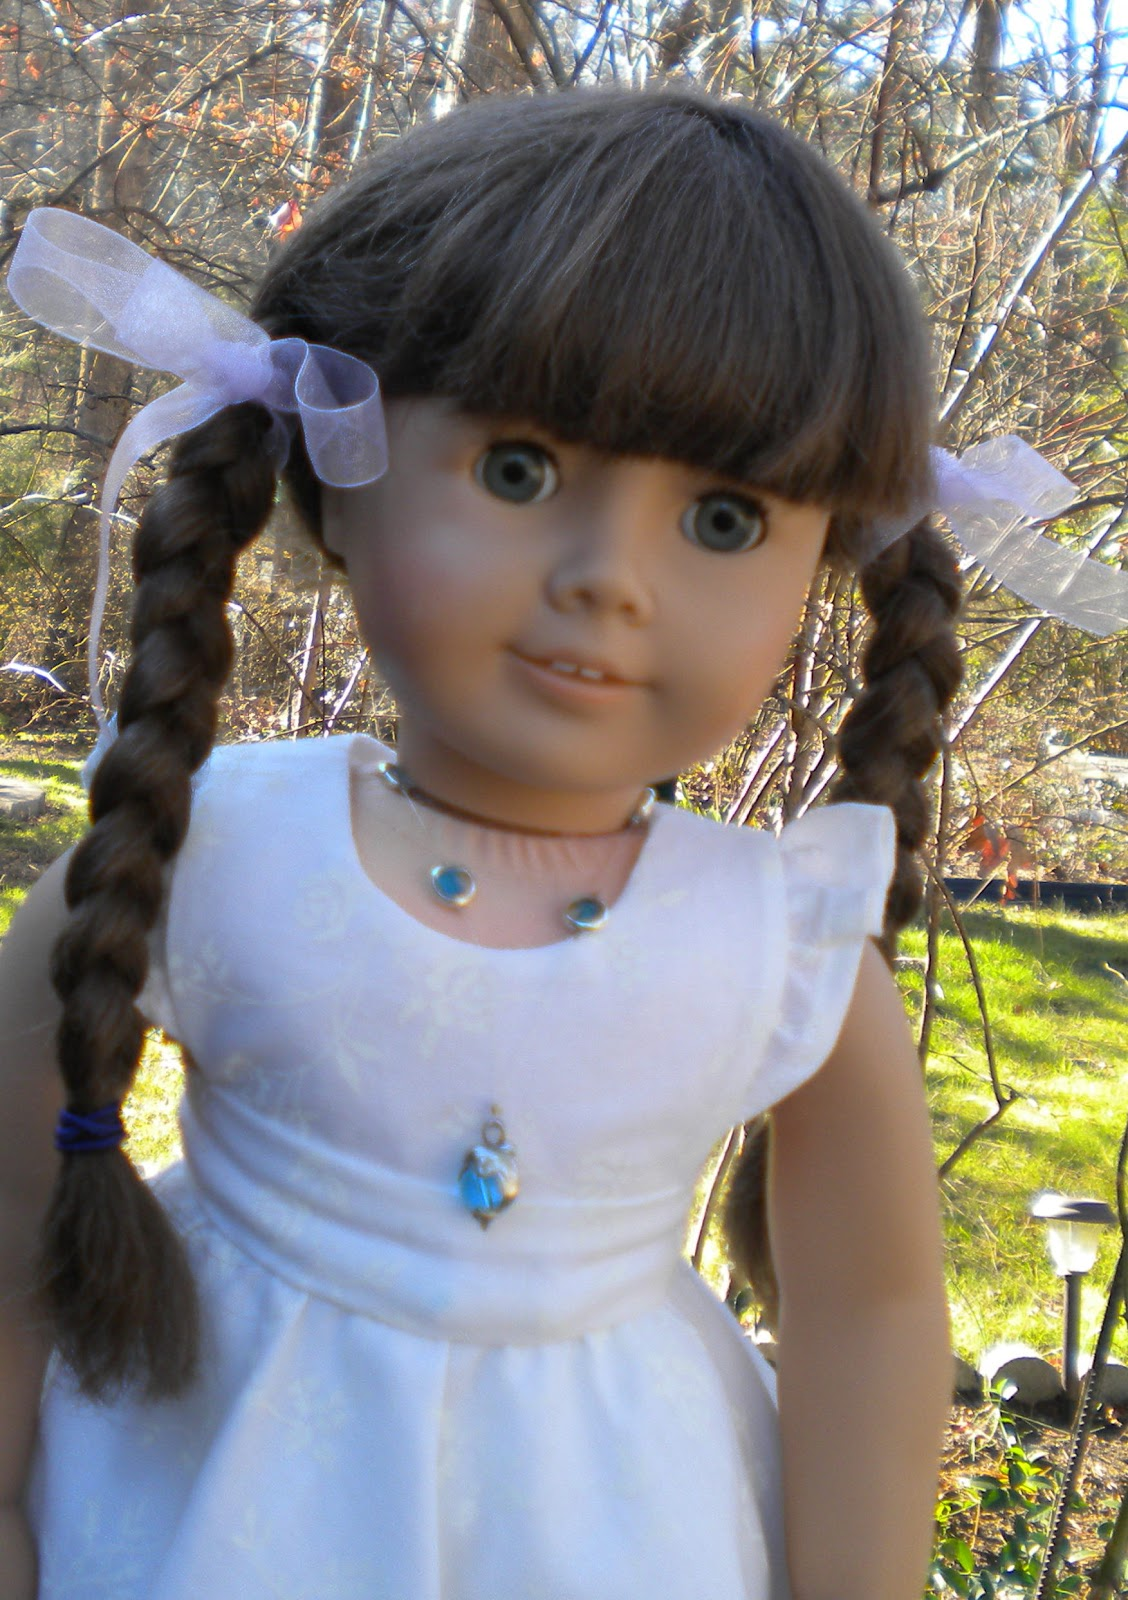 My Dolly S Closet Gently Used American Girl Dolls For Sale